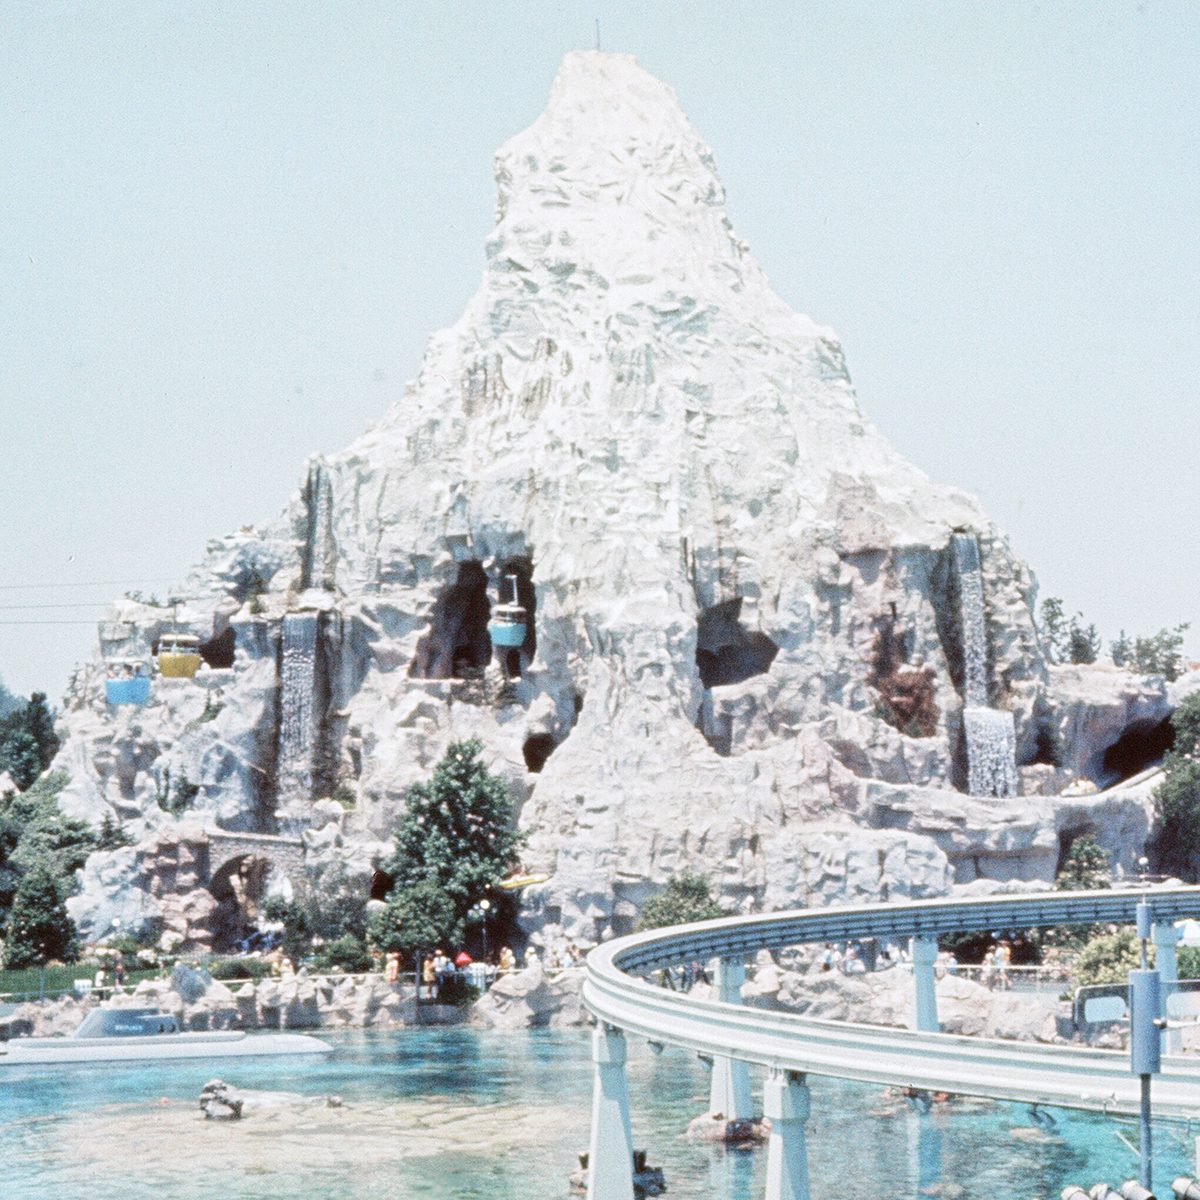 Scenes at the Disneyland theme park in Anaheim, California, United States. Cable cars passinghe Matterhorn mountain attraction and submarine base on the resort. June 1970. (Photo by Monte Fresco/Mirrorpix/Getty Images)